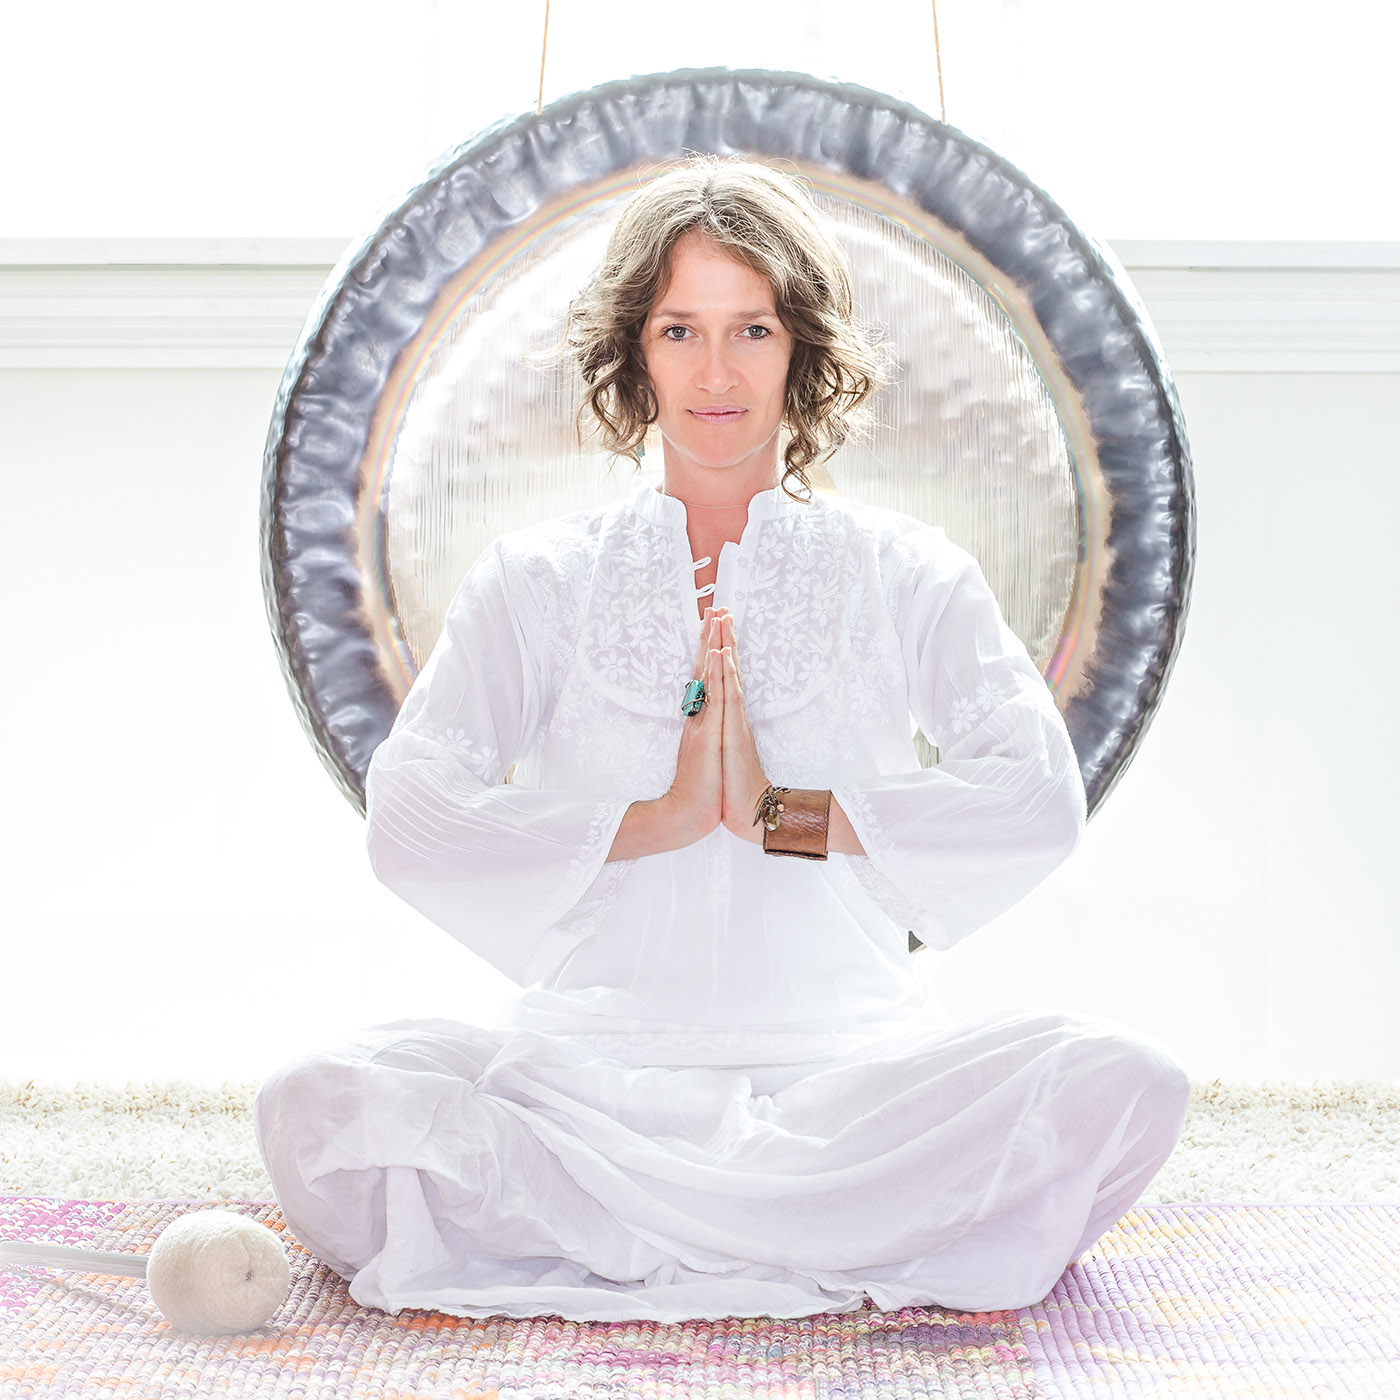 Yoga instructor Theresa Lyn Widmann